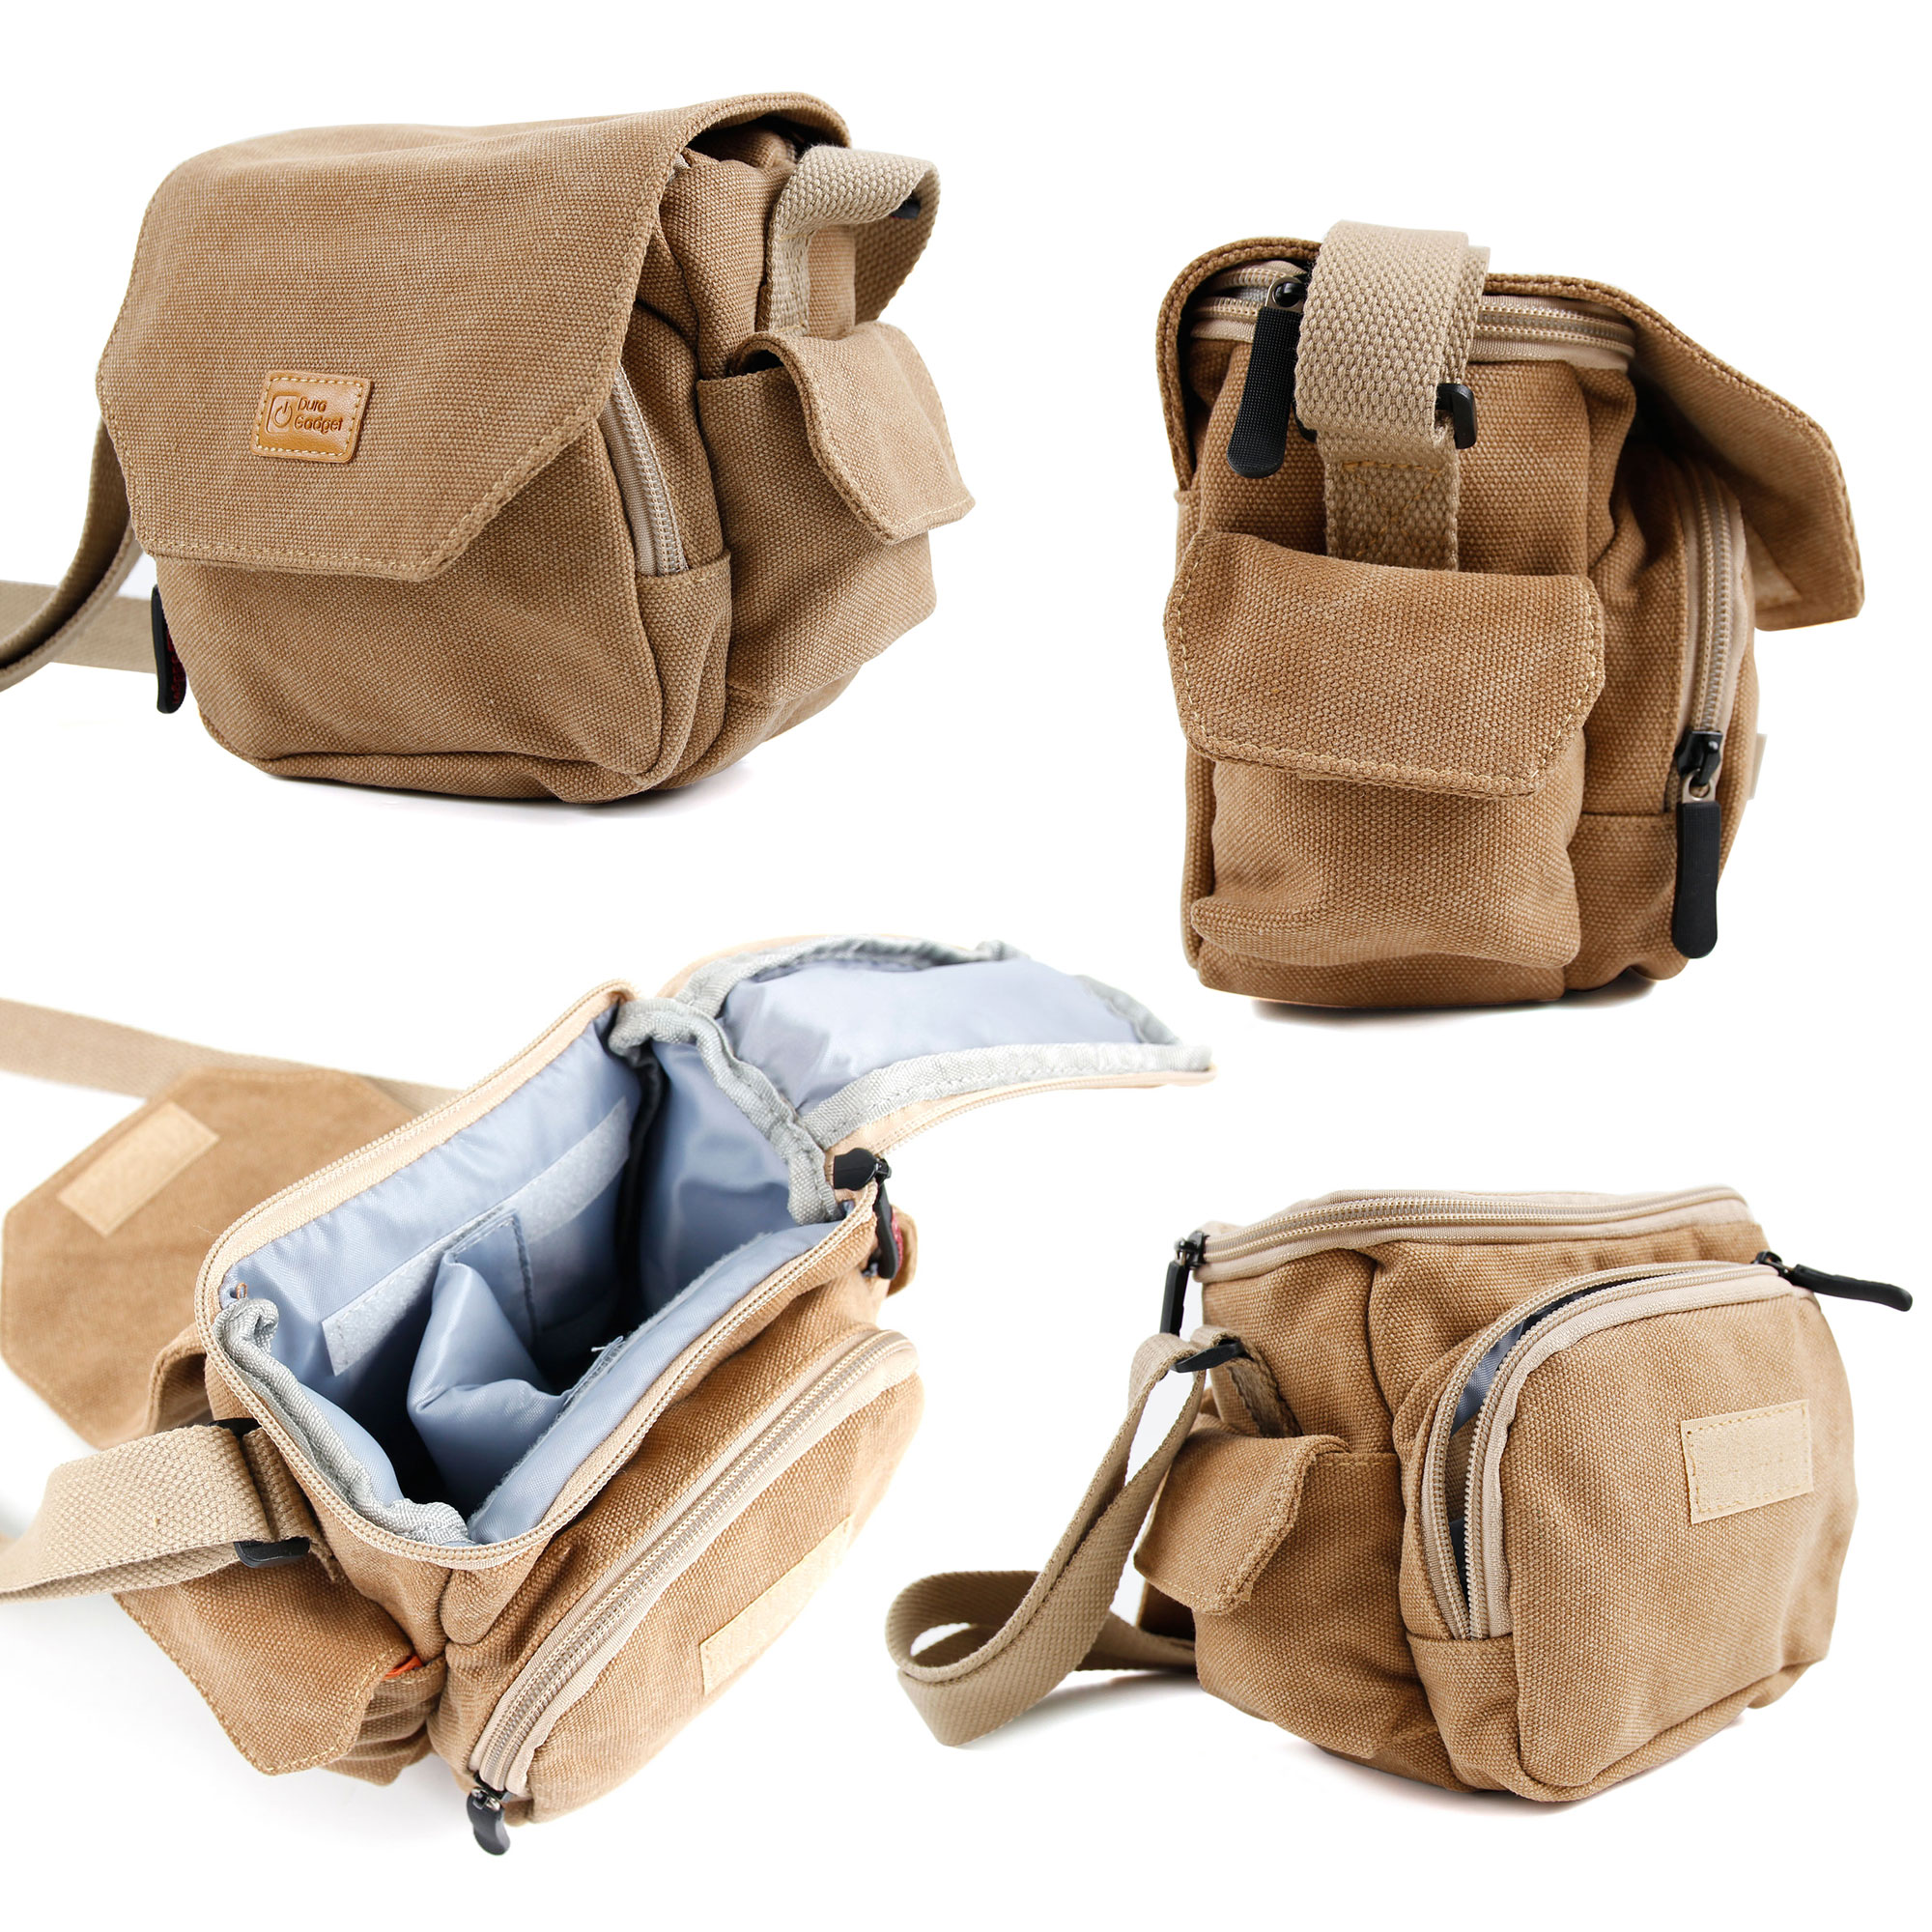 Cameras & Photo 10x42 Binoculars & Telescopes Light Brown Canvas Bag With Pockets For Hutact Wide-field Binoculars